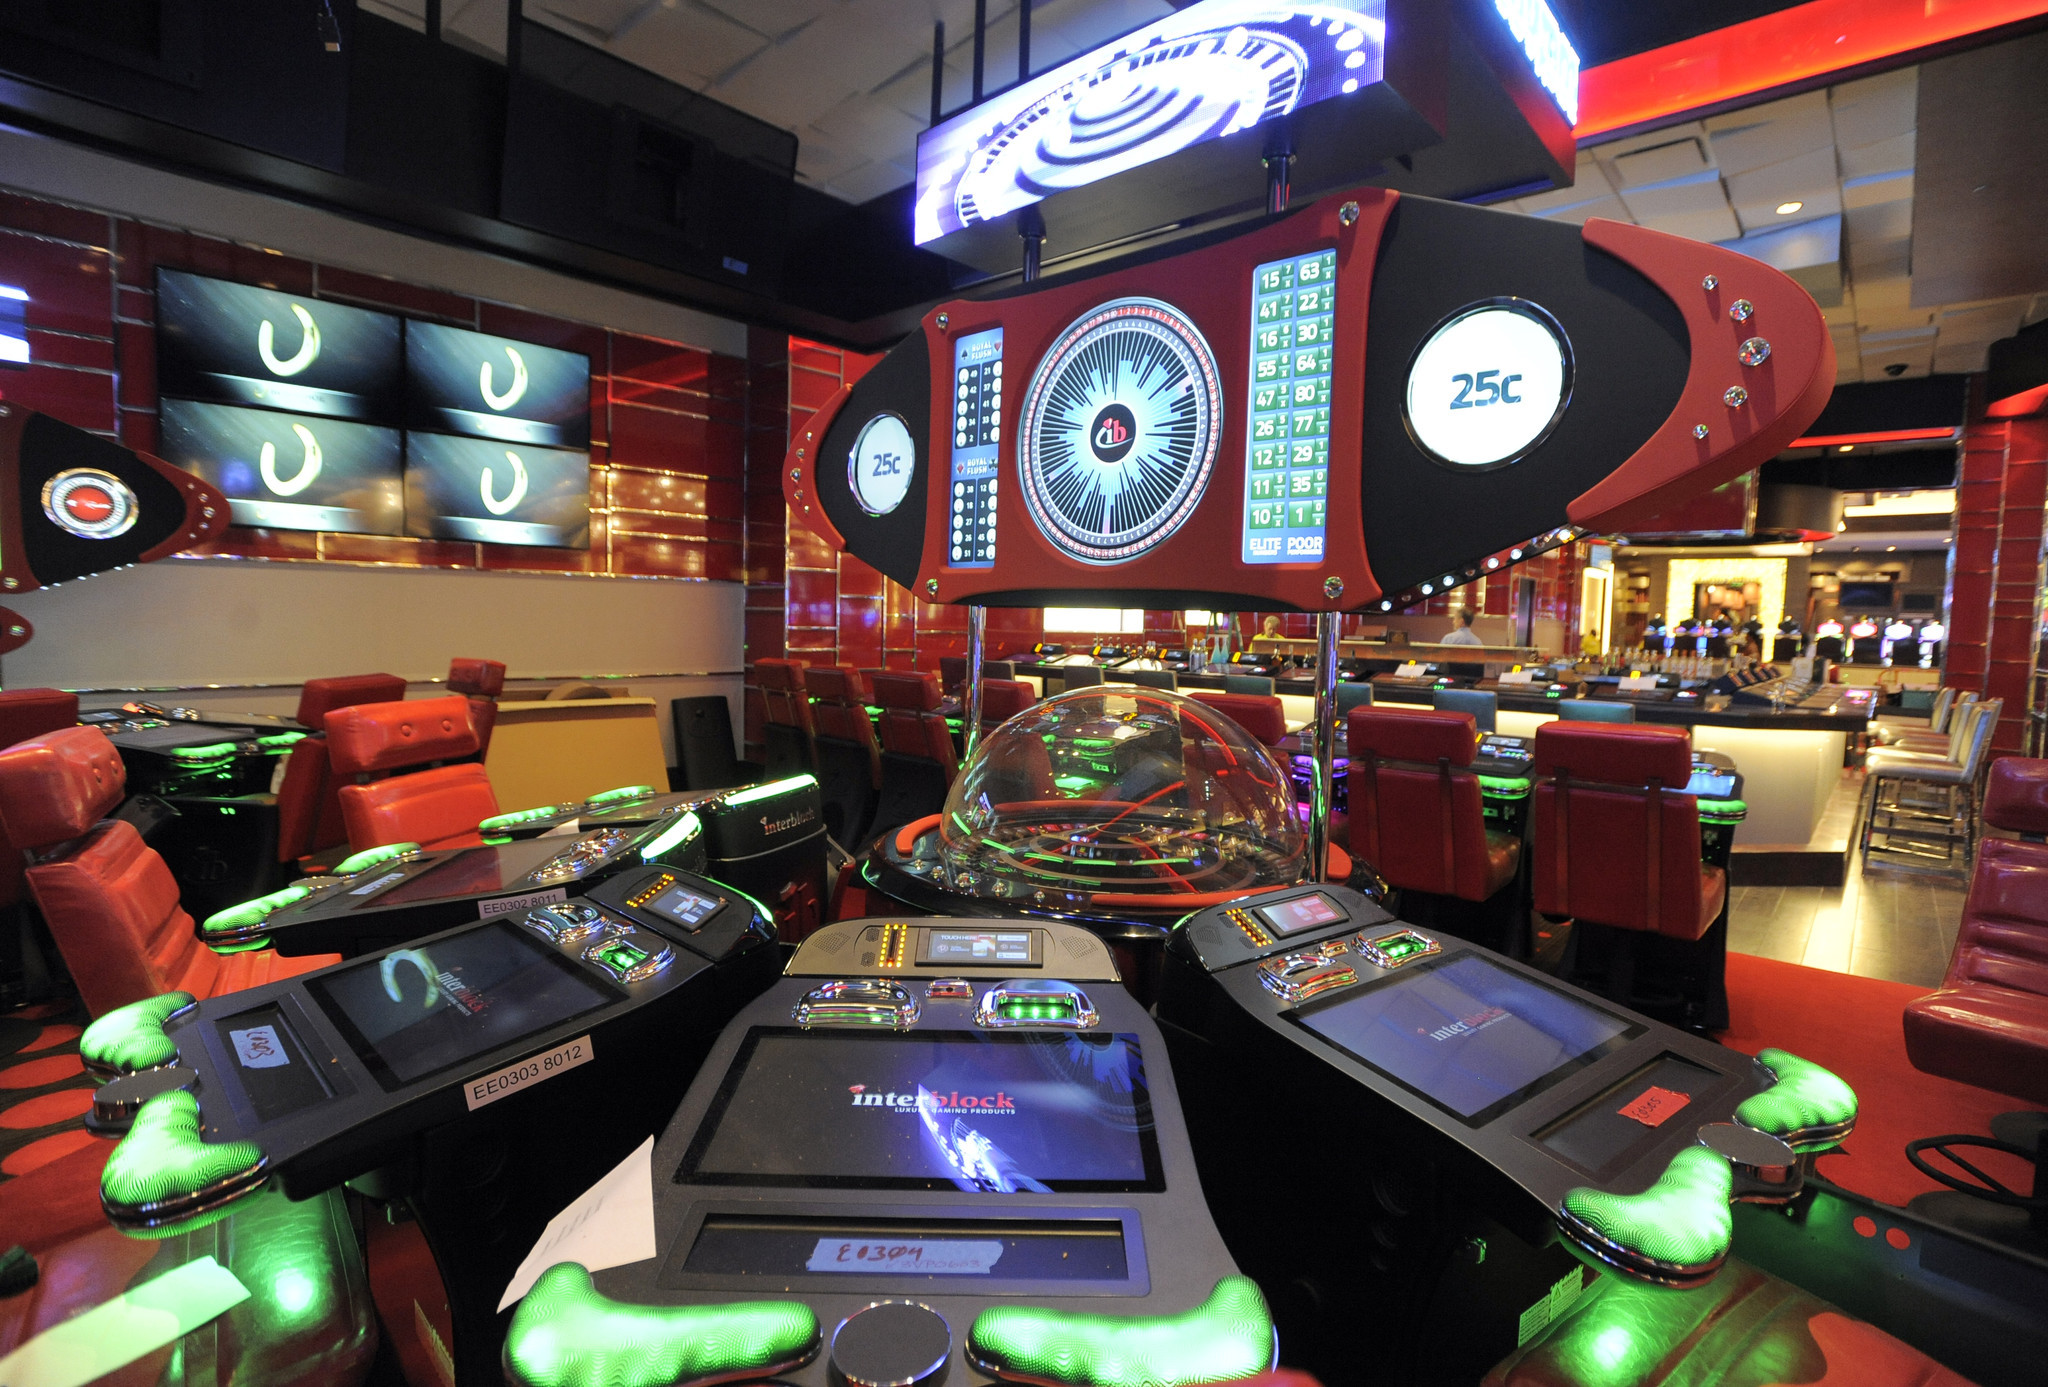 Horseshoe Baltimore casino under construction [Pictures] - Electronic gaming